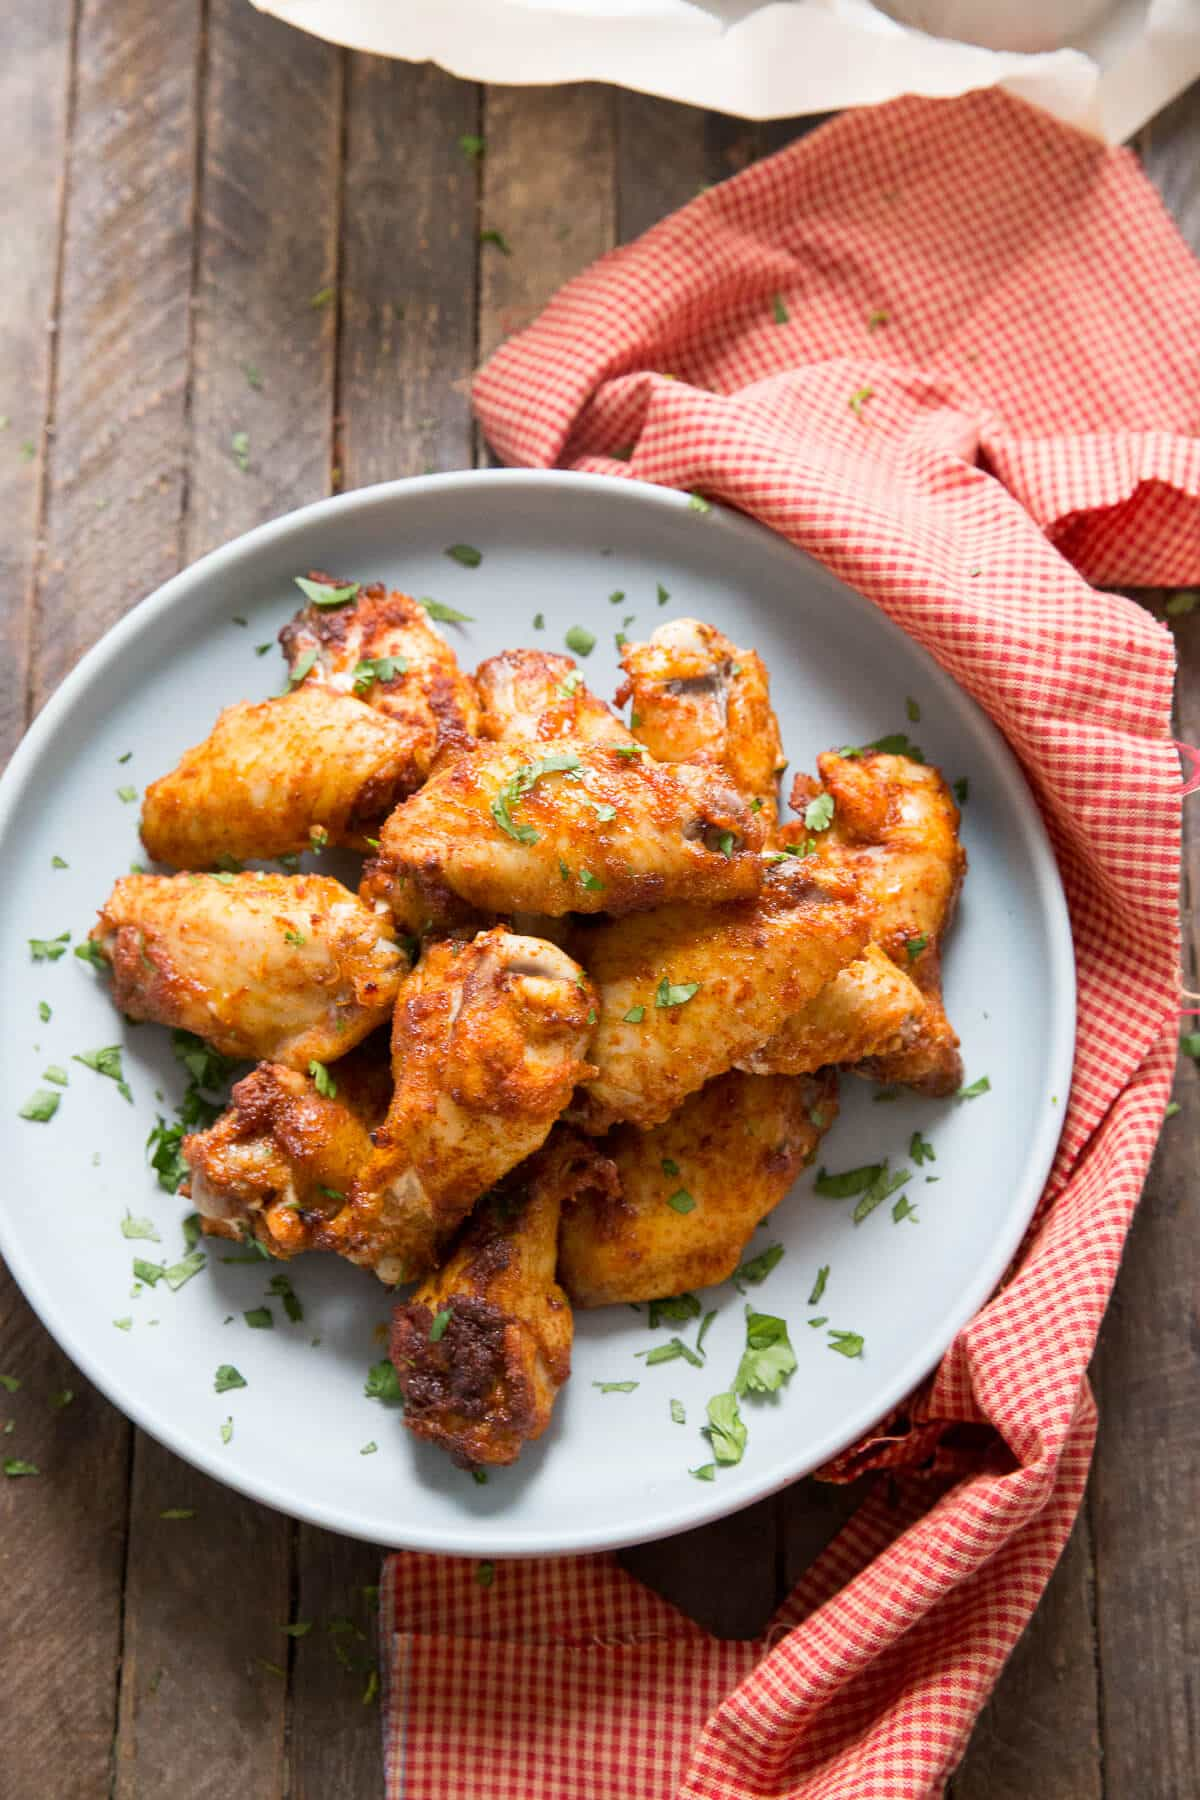 Love wings? Then you have to try these dry rub chicken wings!